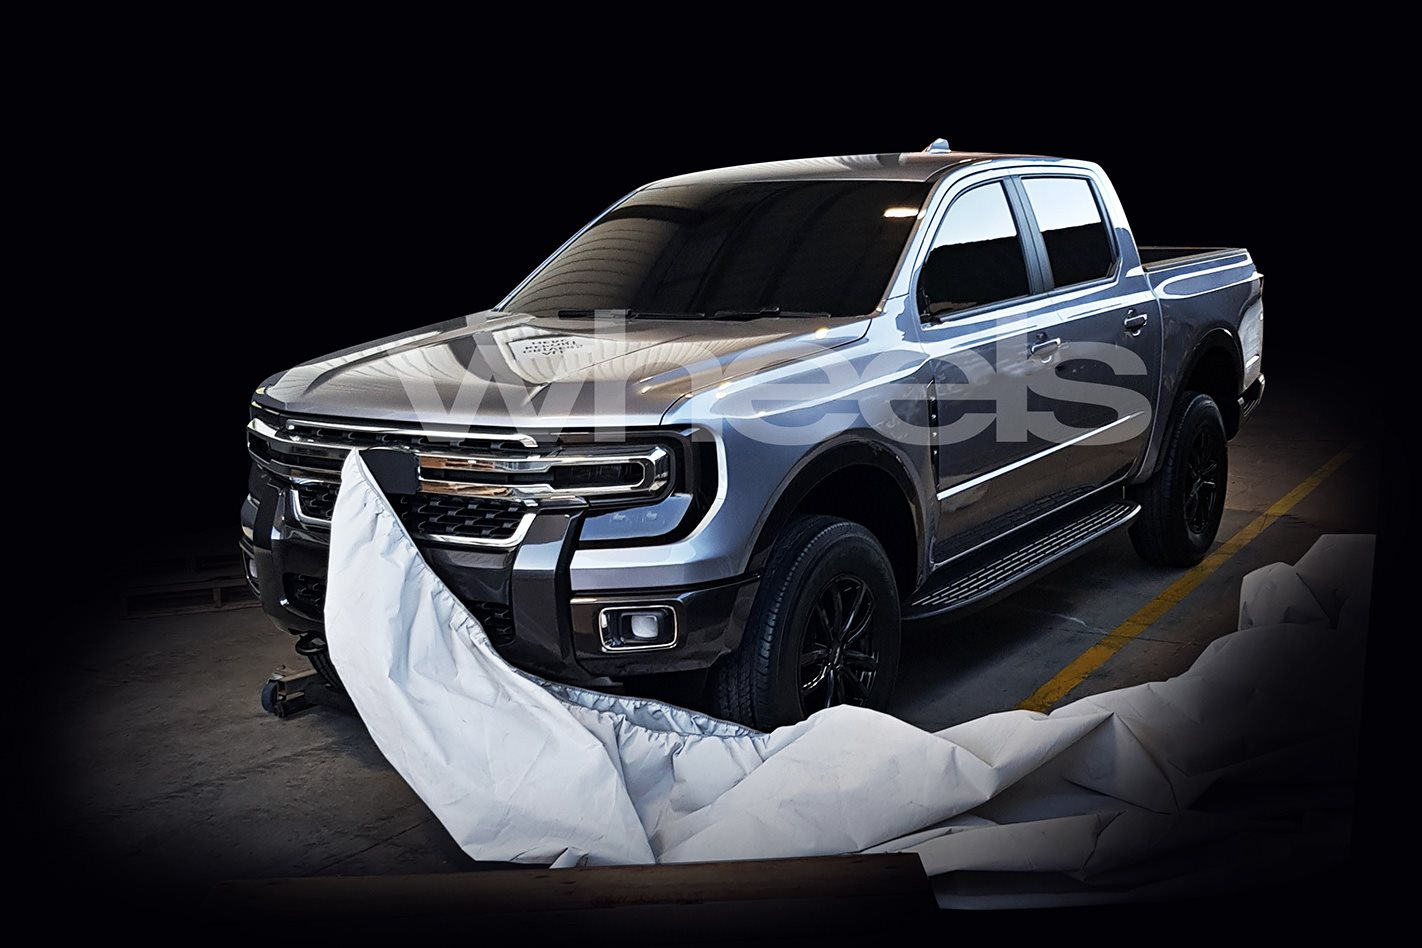 This Futuristic Pickup Truck Could Be The 2021 Ford Ranger